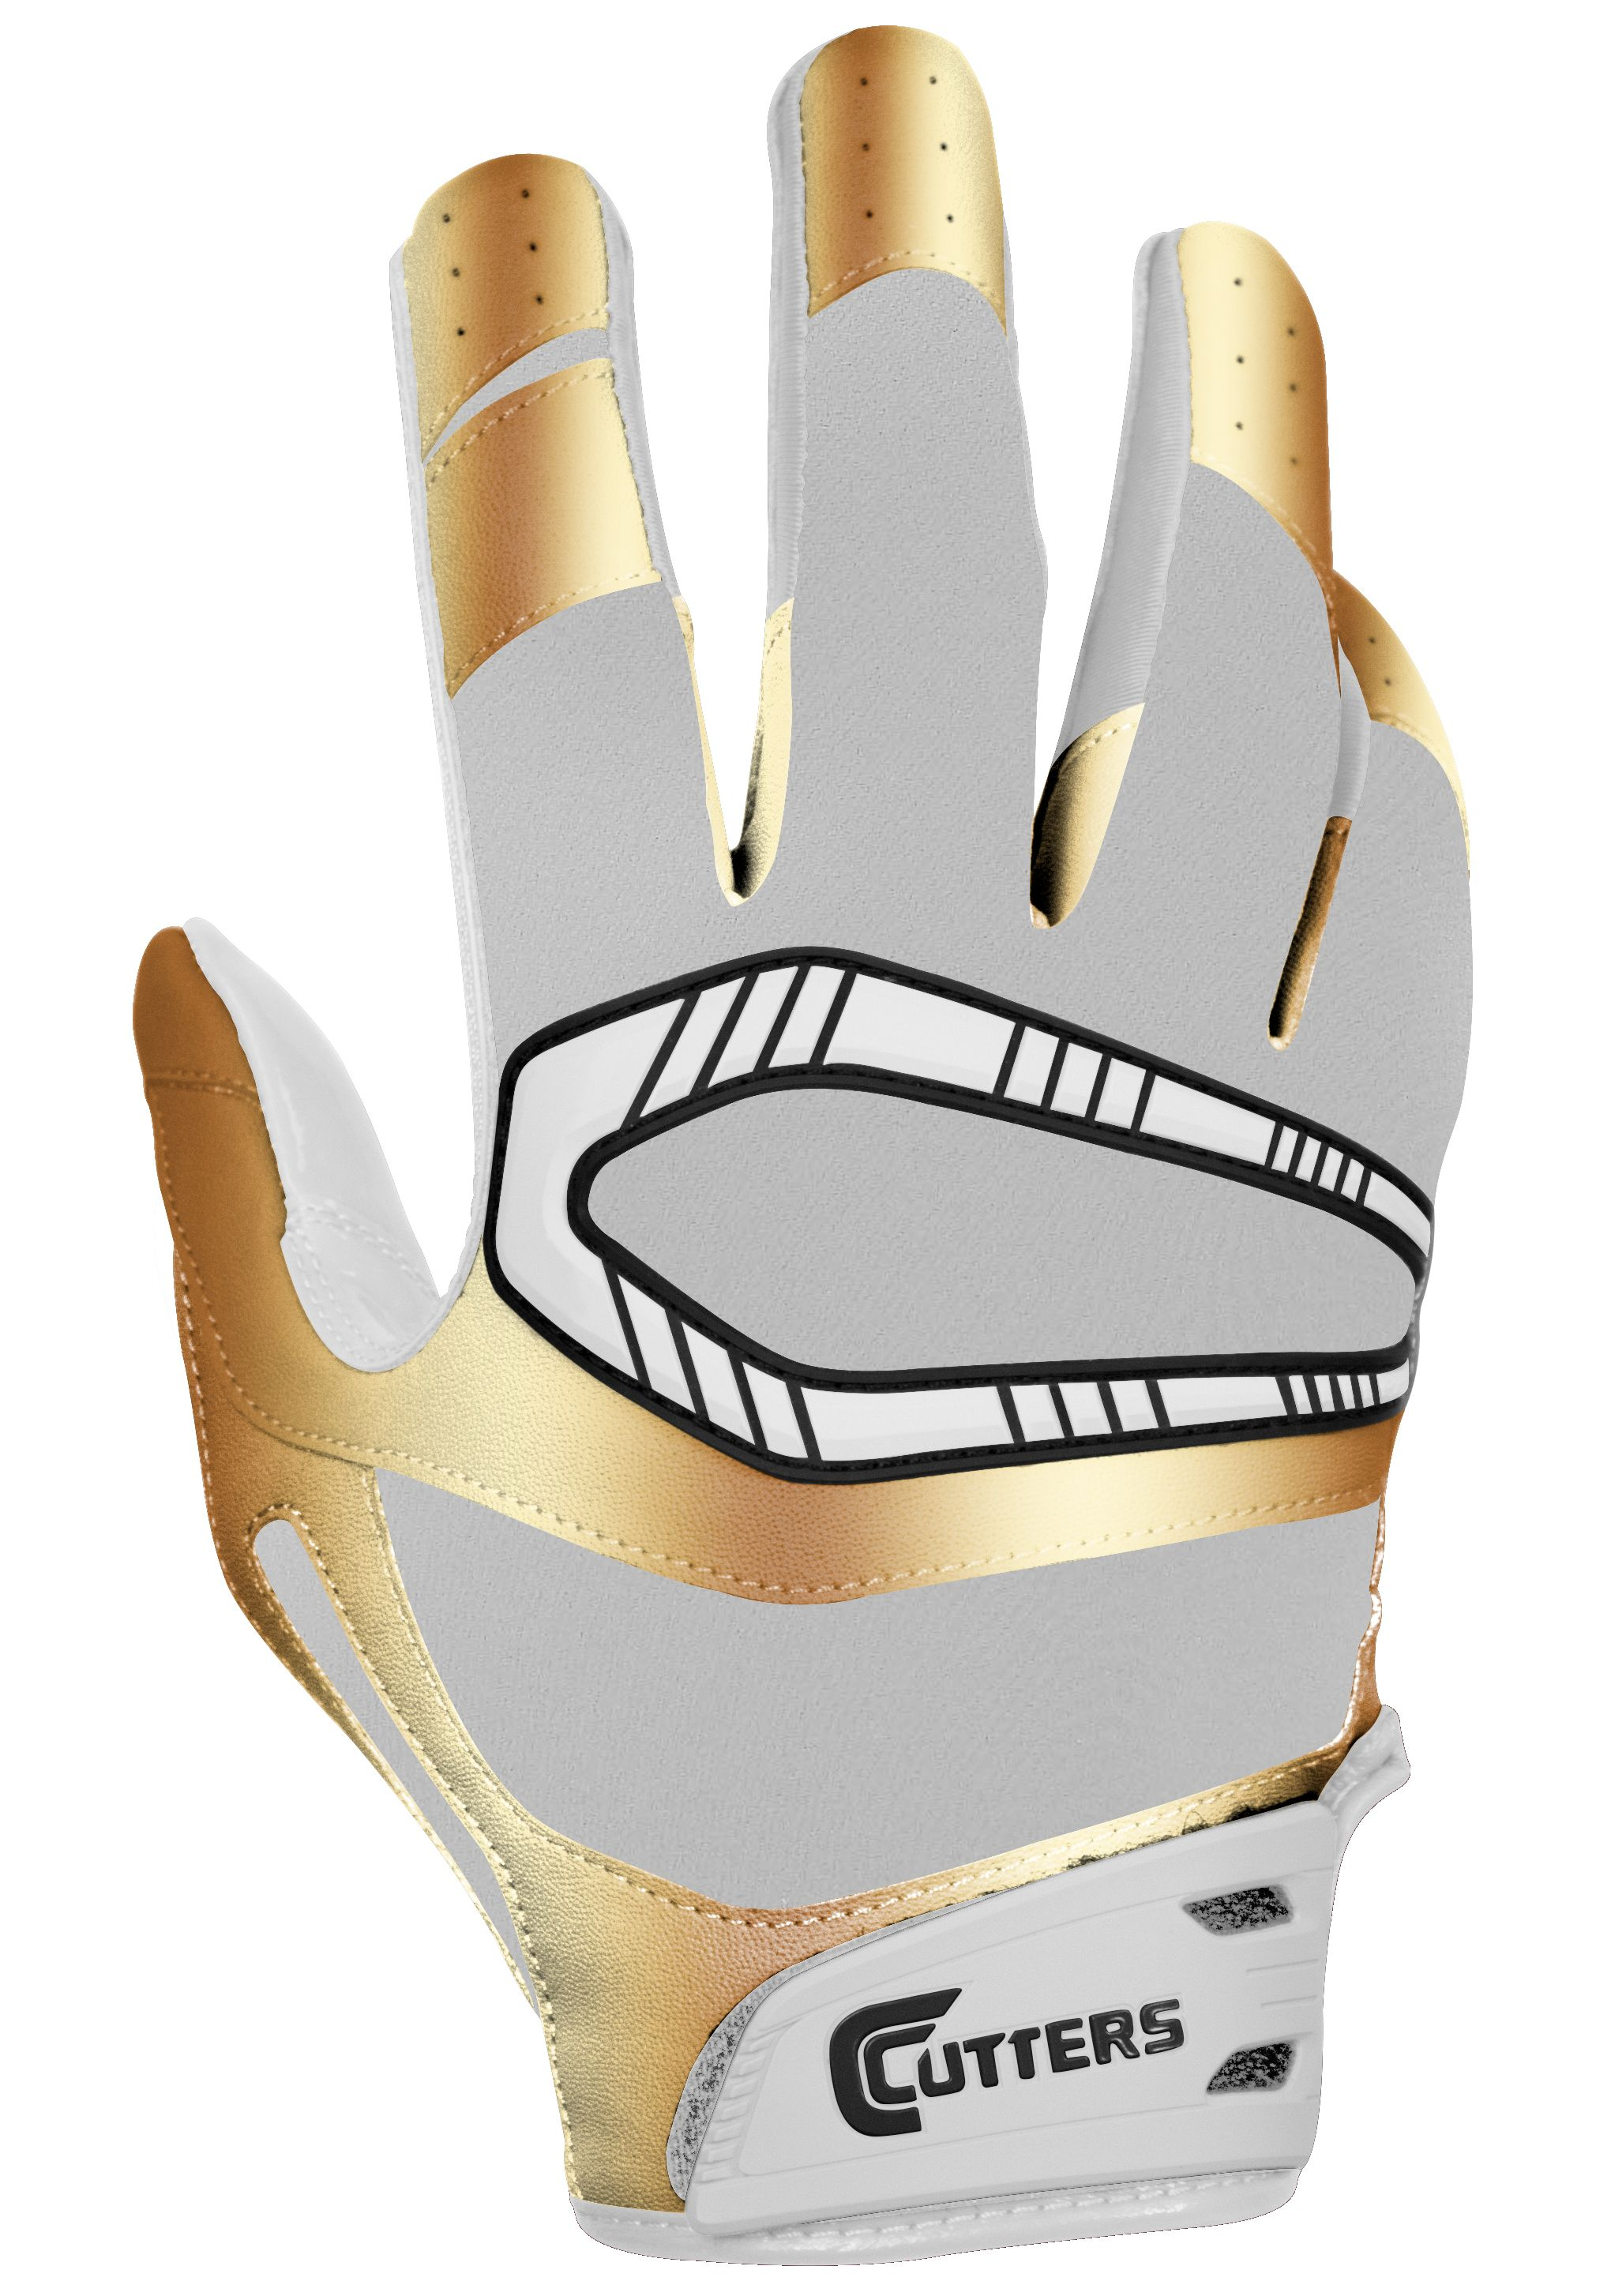 custom football gloves cutters Cutters 145942 likes 230 talking about this no other glove performs like this ™  photos image may contain: football  byog custom rev pro 30 $6499.